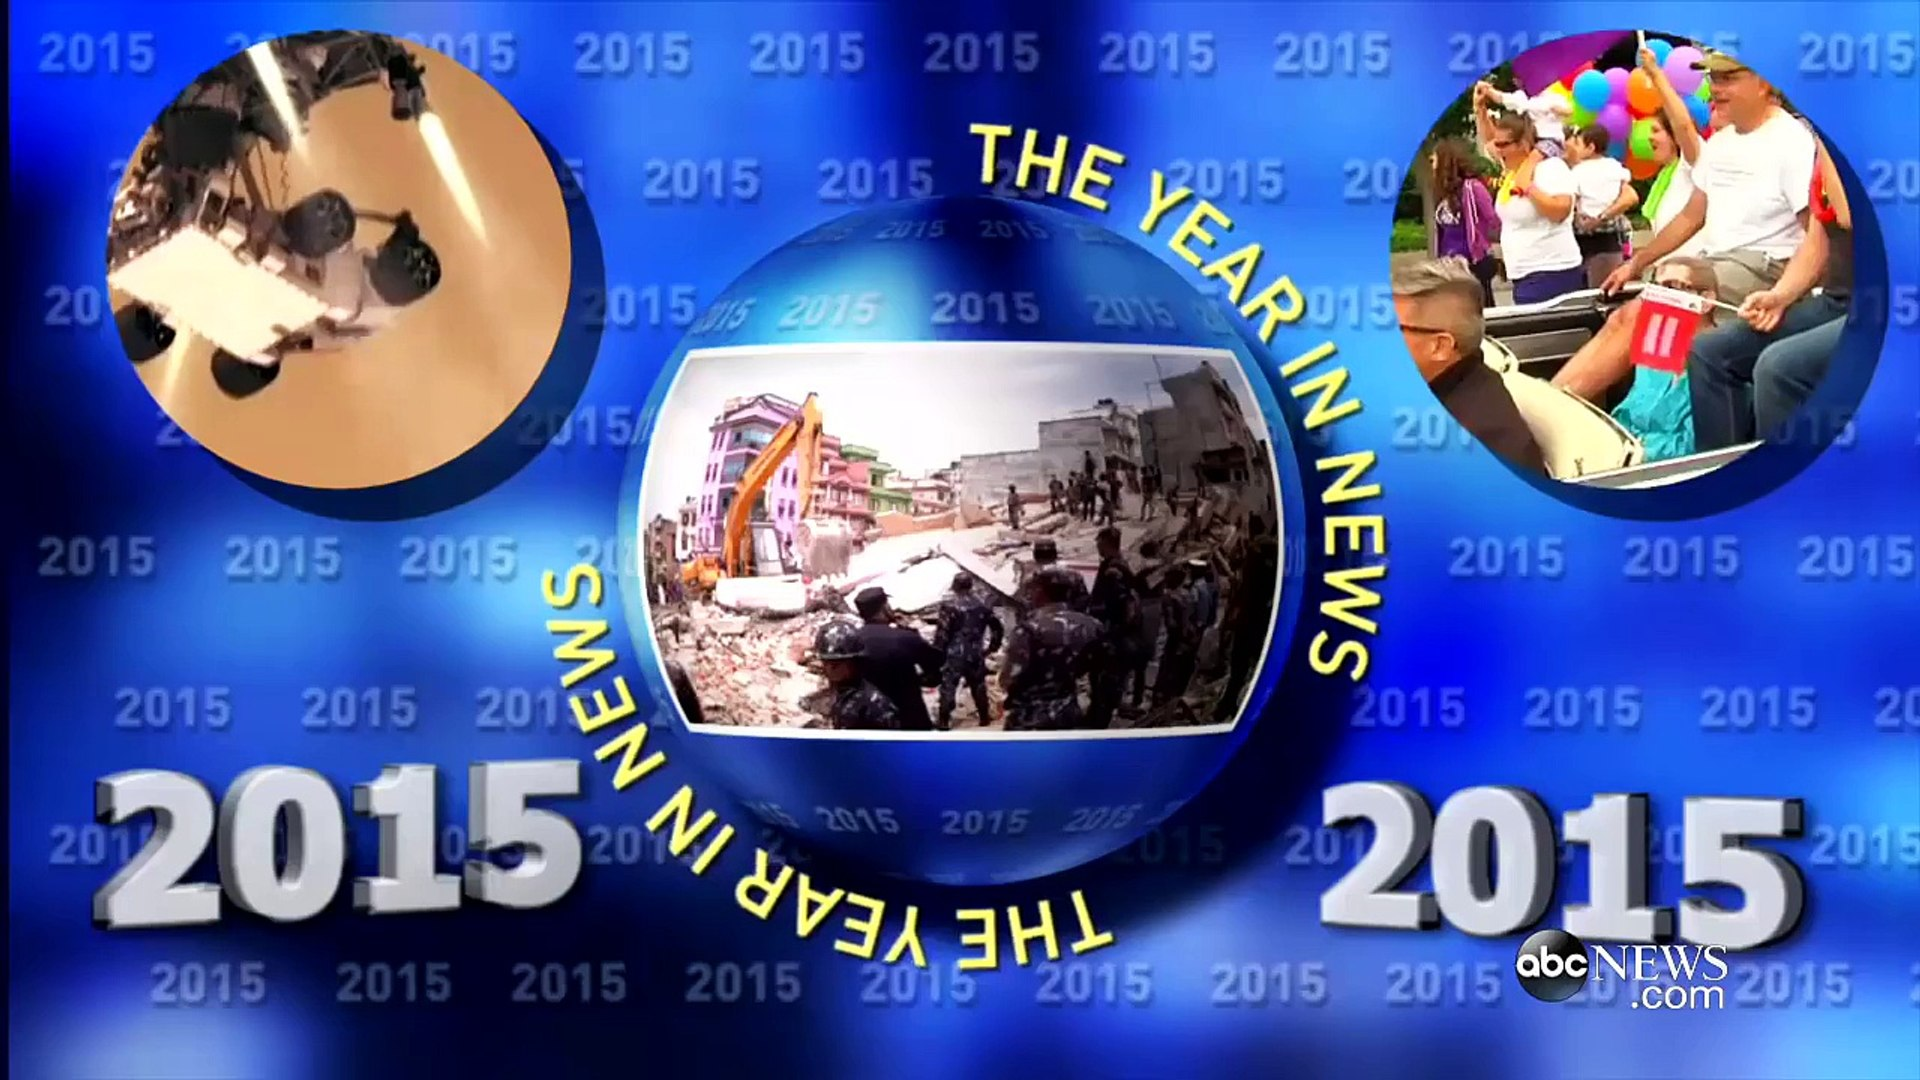 ABC News Year in Review: News